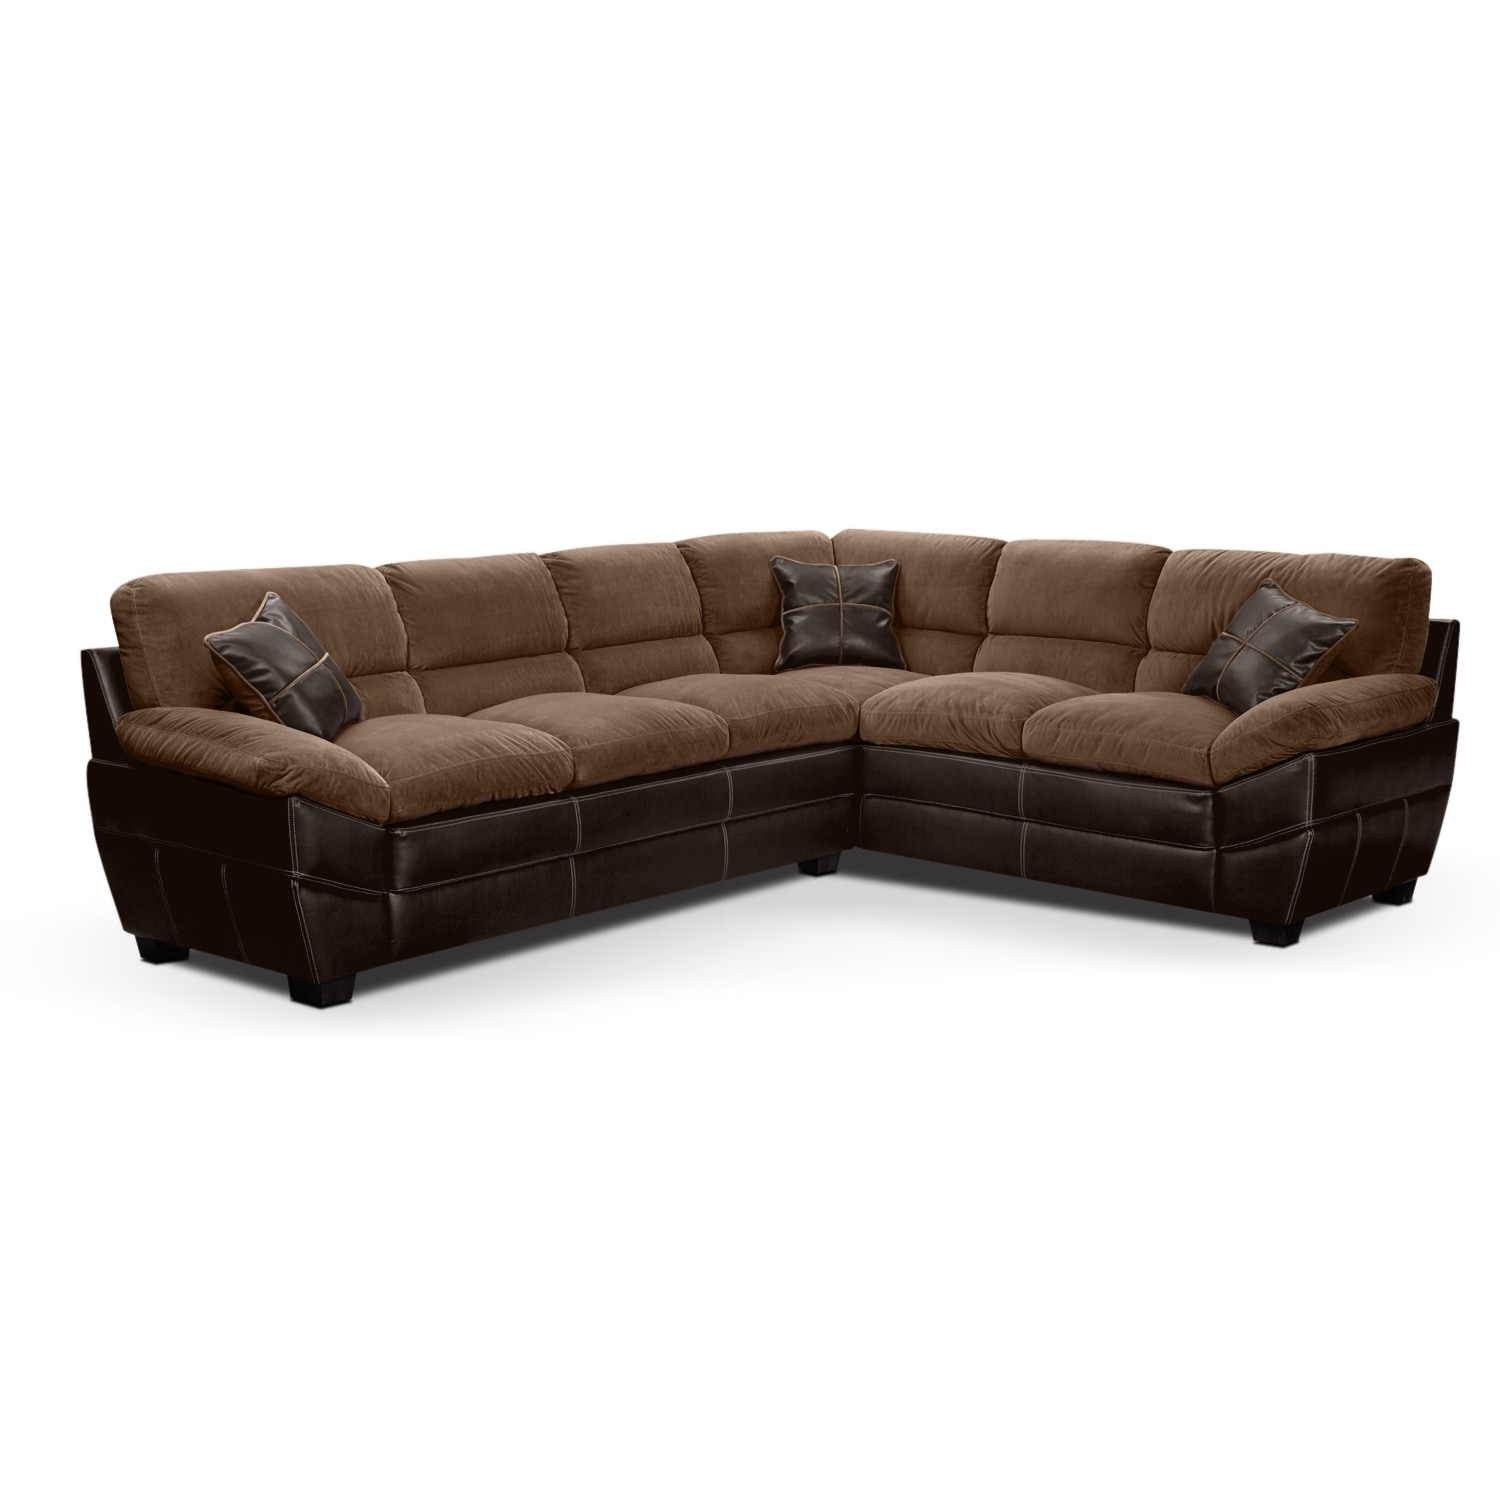 Chandler 2-Piece Left-Facing Sectional - Beige and Brown